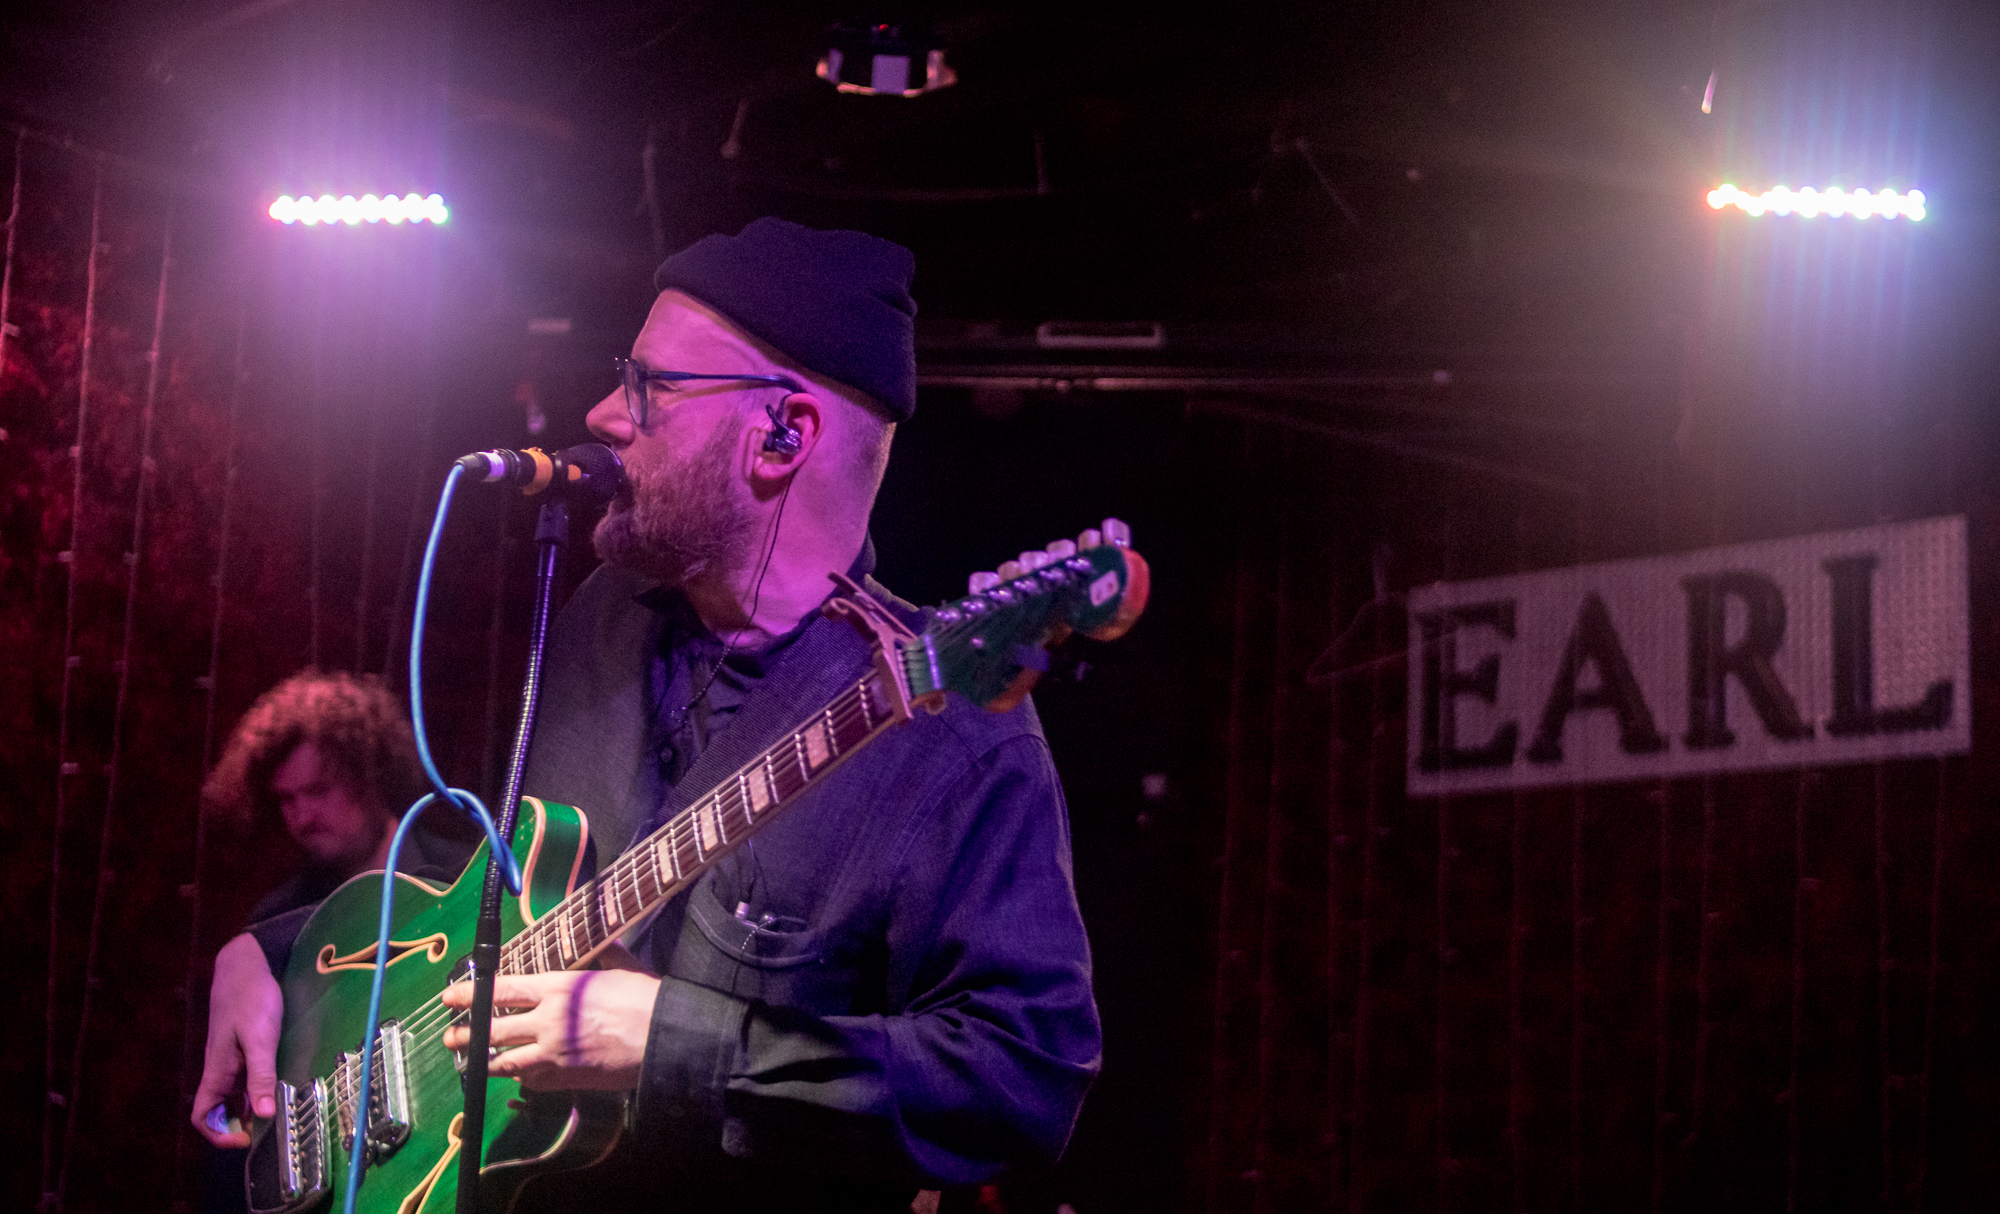 27Mike Doughty Ruby Vroom The Earl Atlanta Bullet Music.jpg